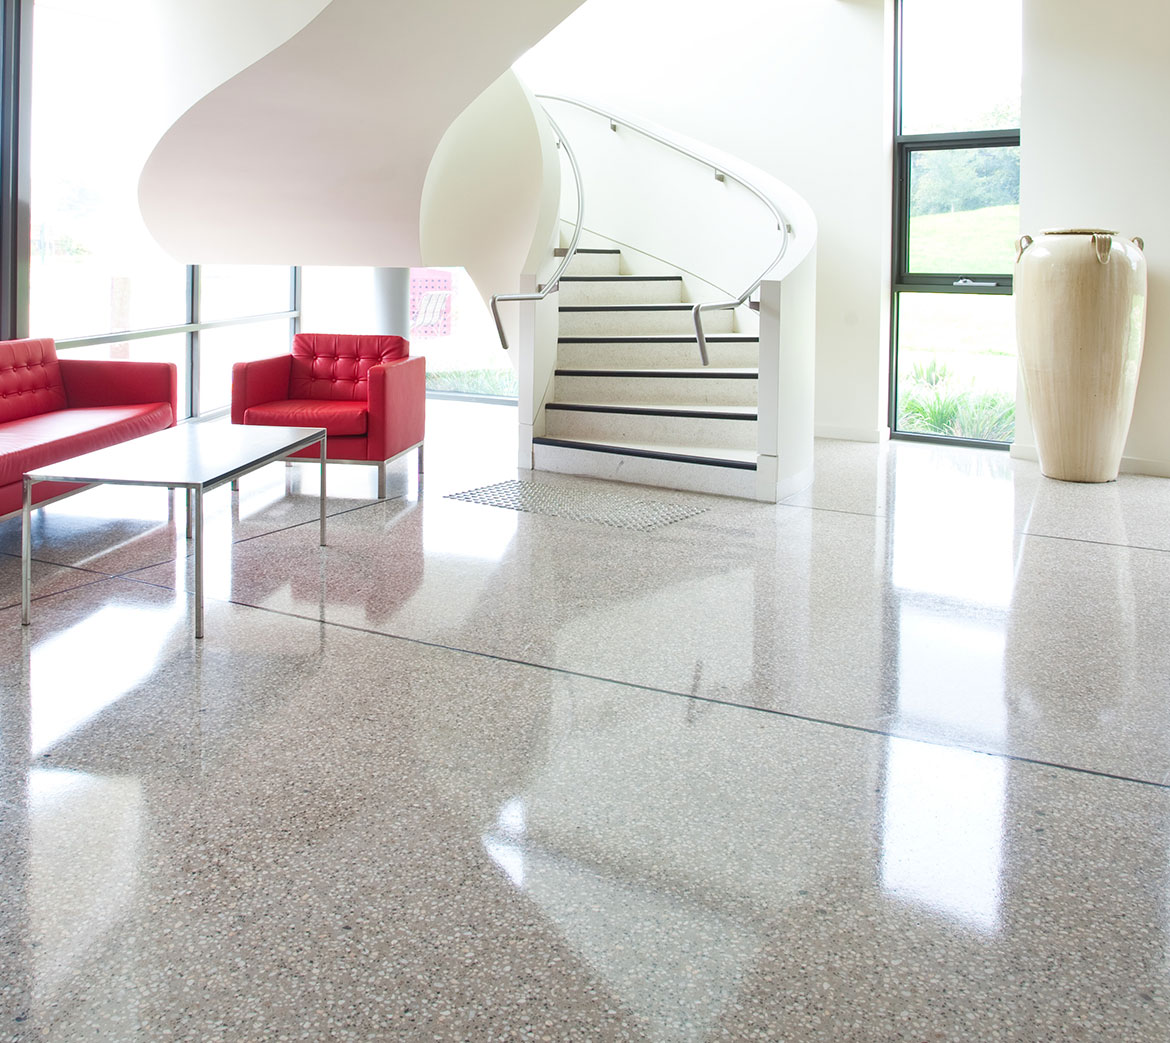 CCS Apollo used in this high gloss polished floor